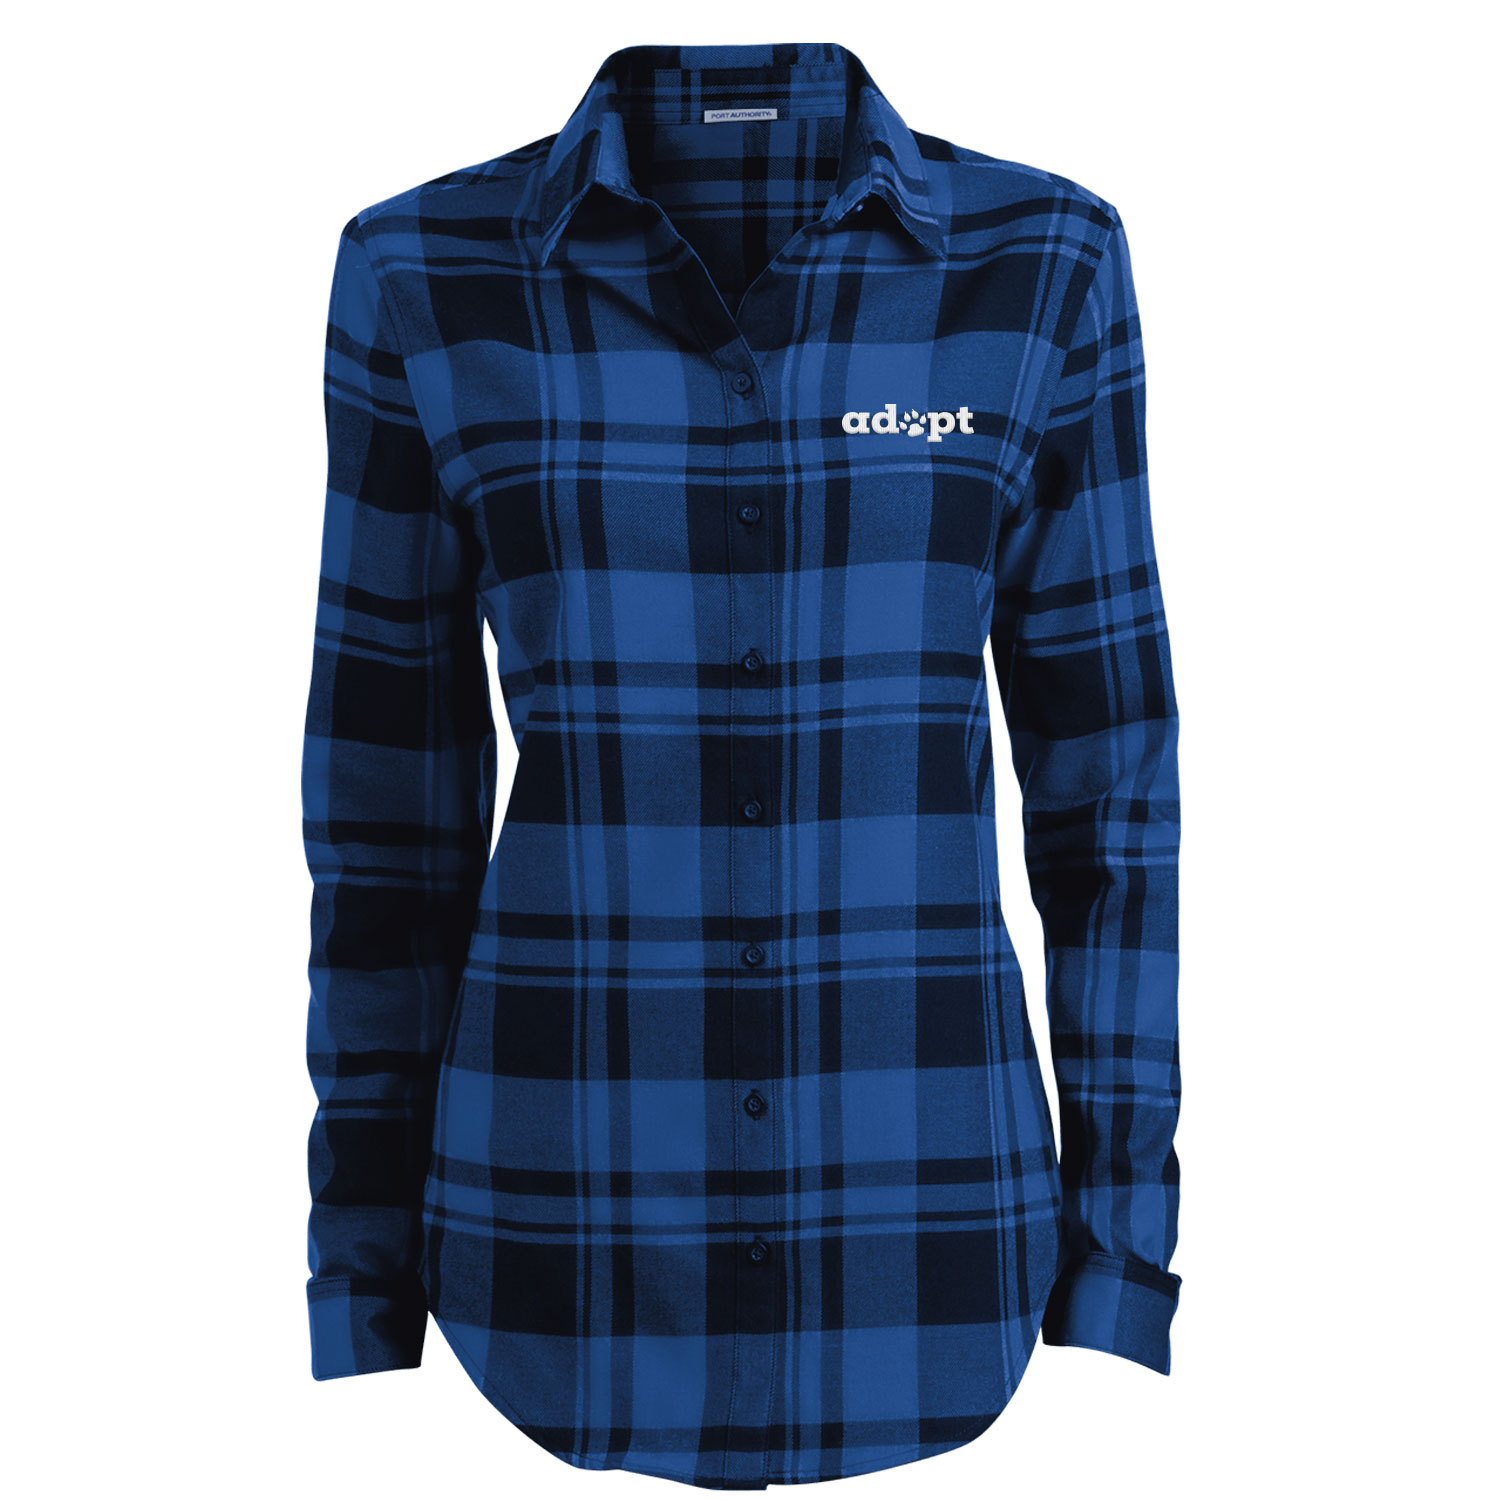 Adopt Paw Embroidered Ladies' Flannel Shirt